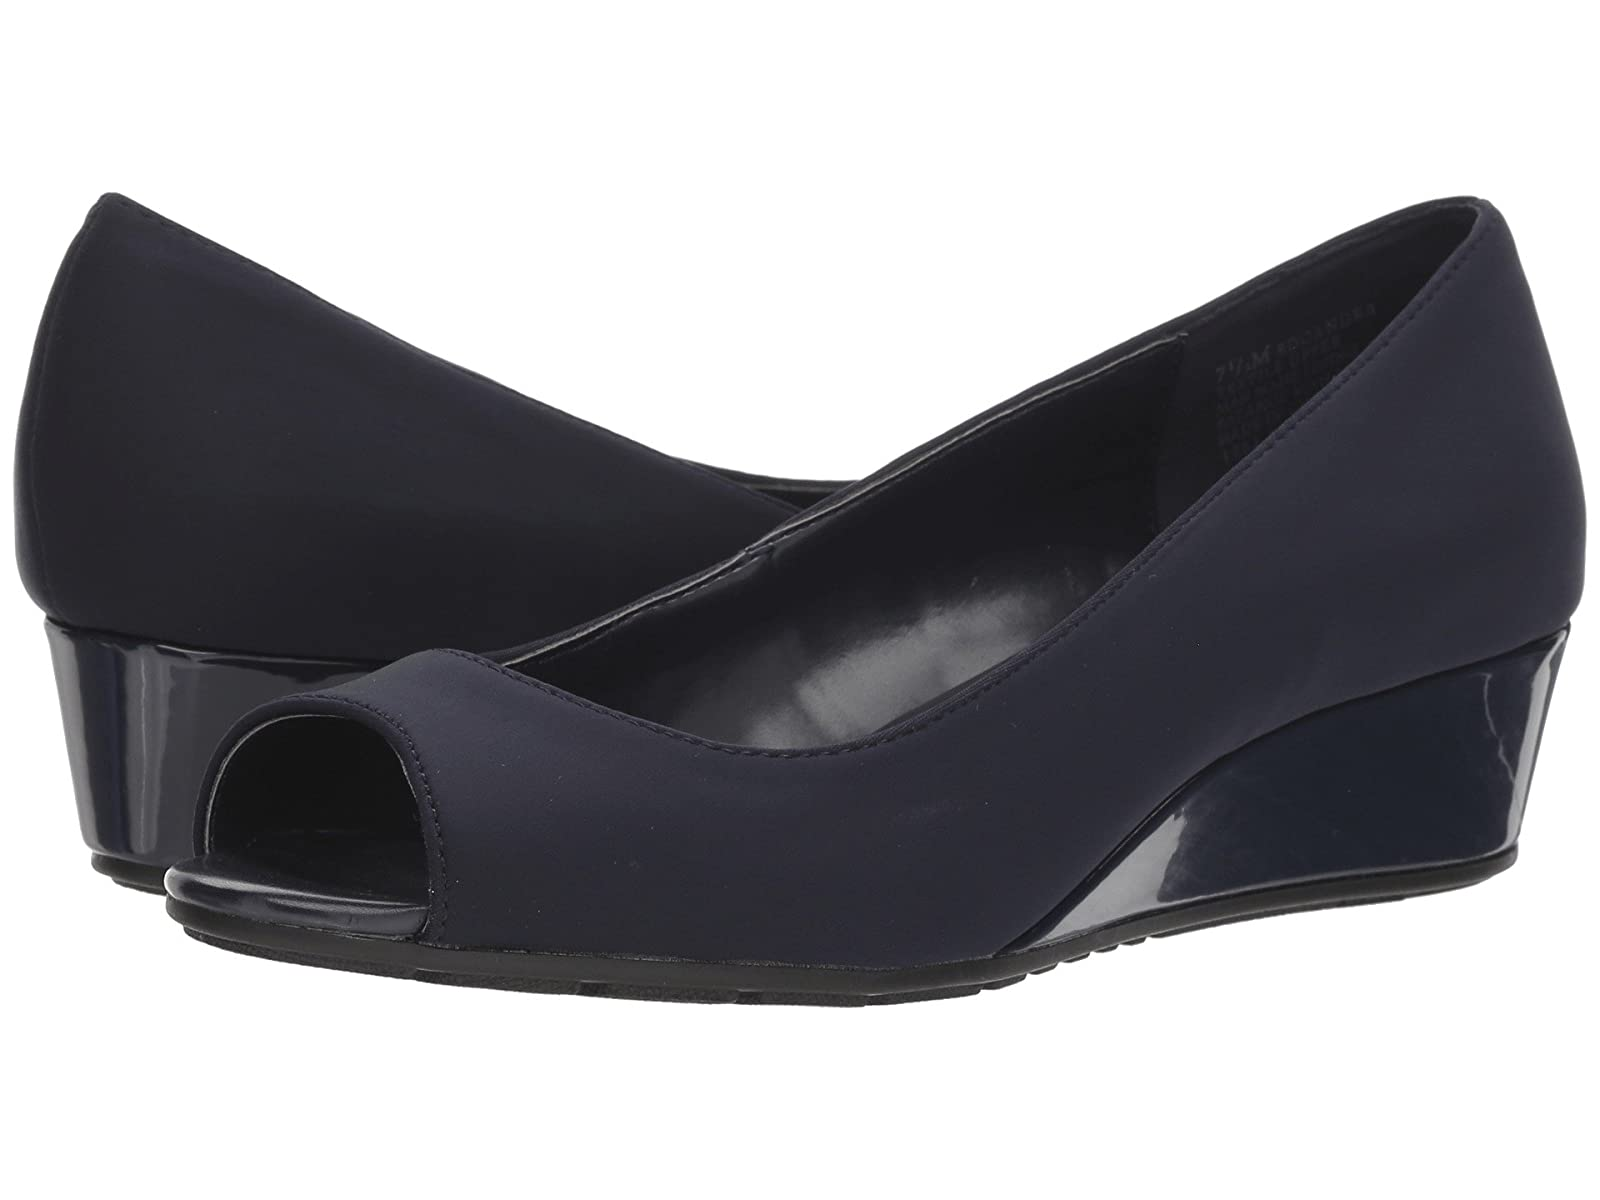 Bandolino CandraAtmospheric grades have affordable shoes